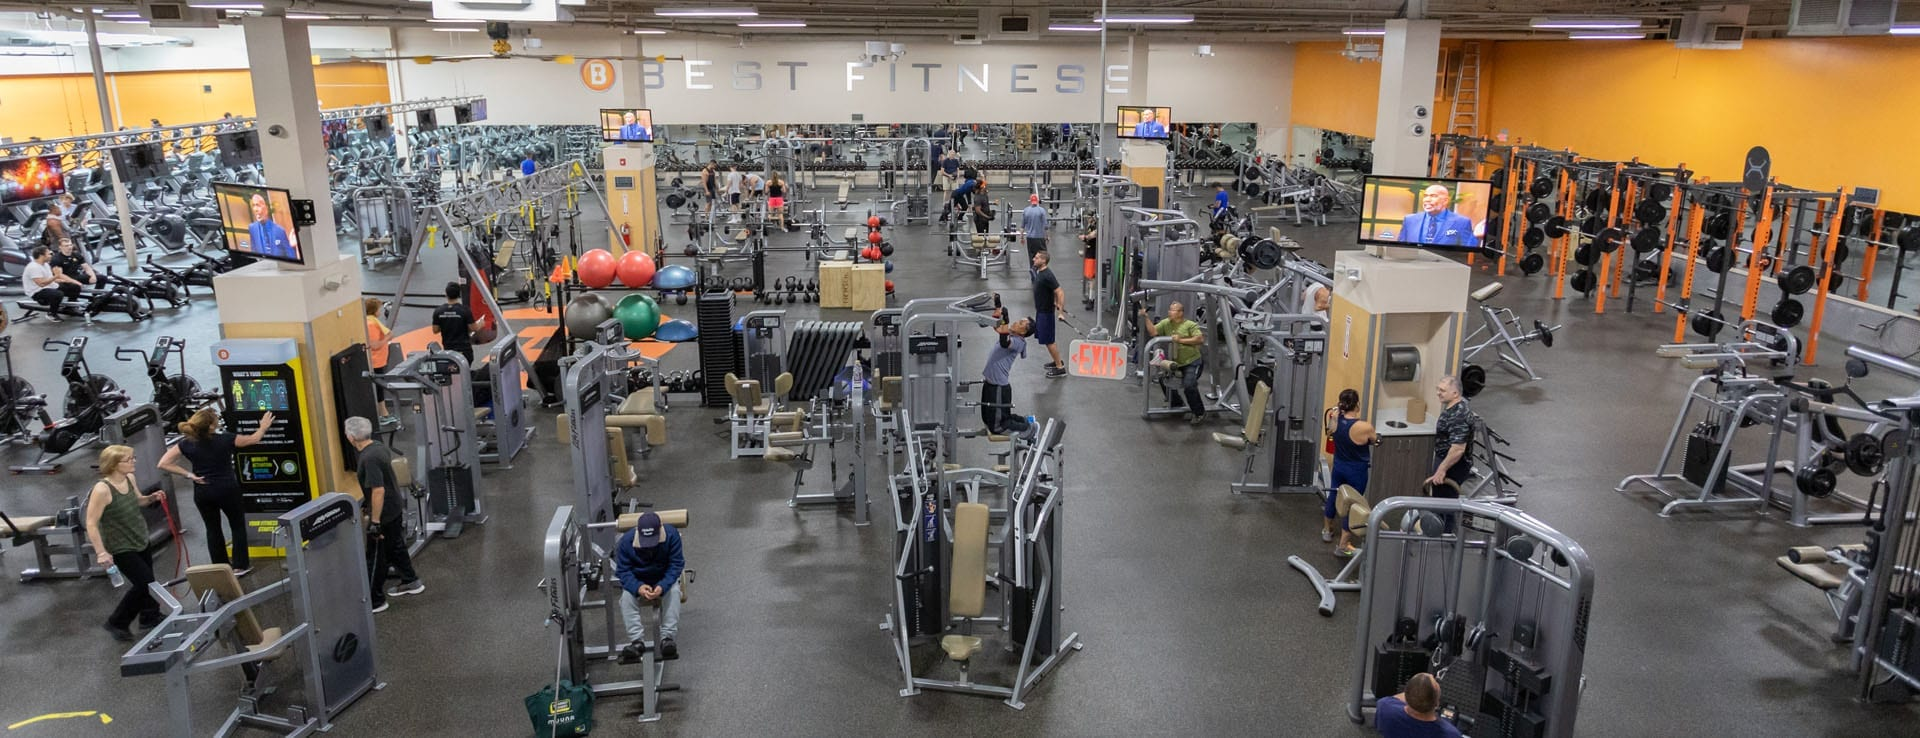 best-fitness-gyms-danvers